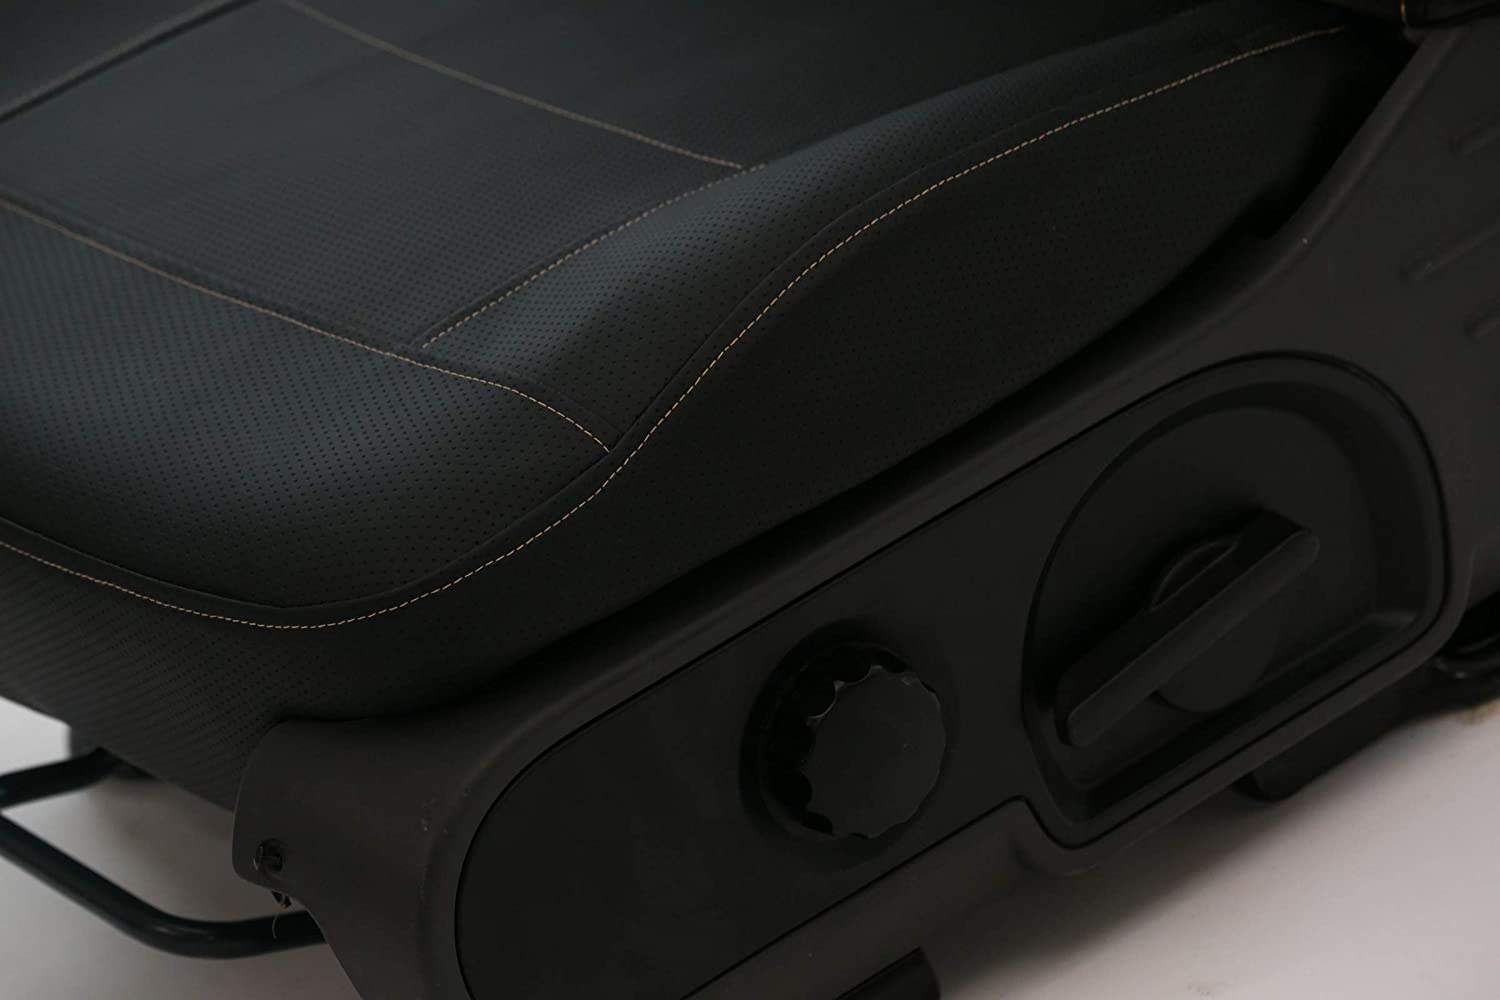 Custom Made Middle Saddleman S 779931-01 Black Seat Cover